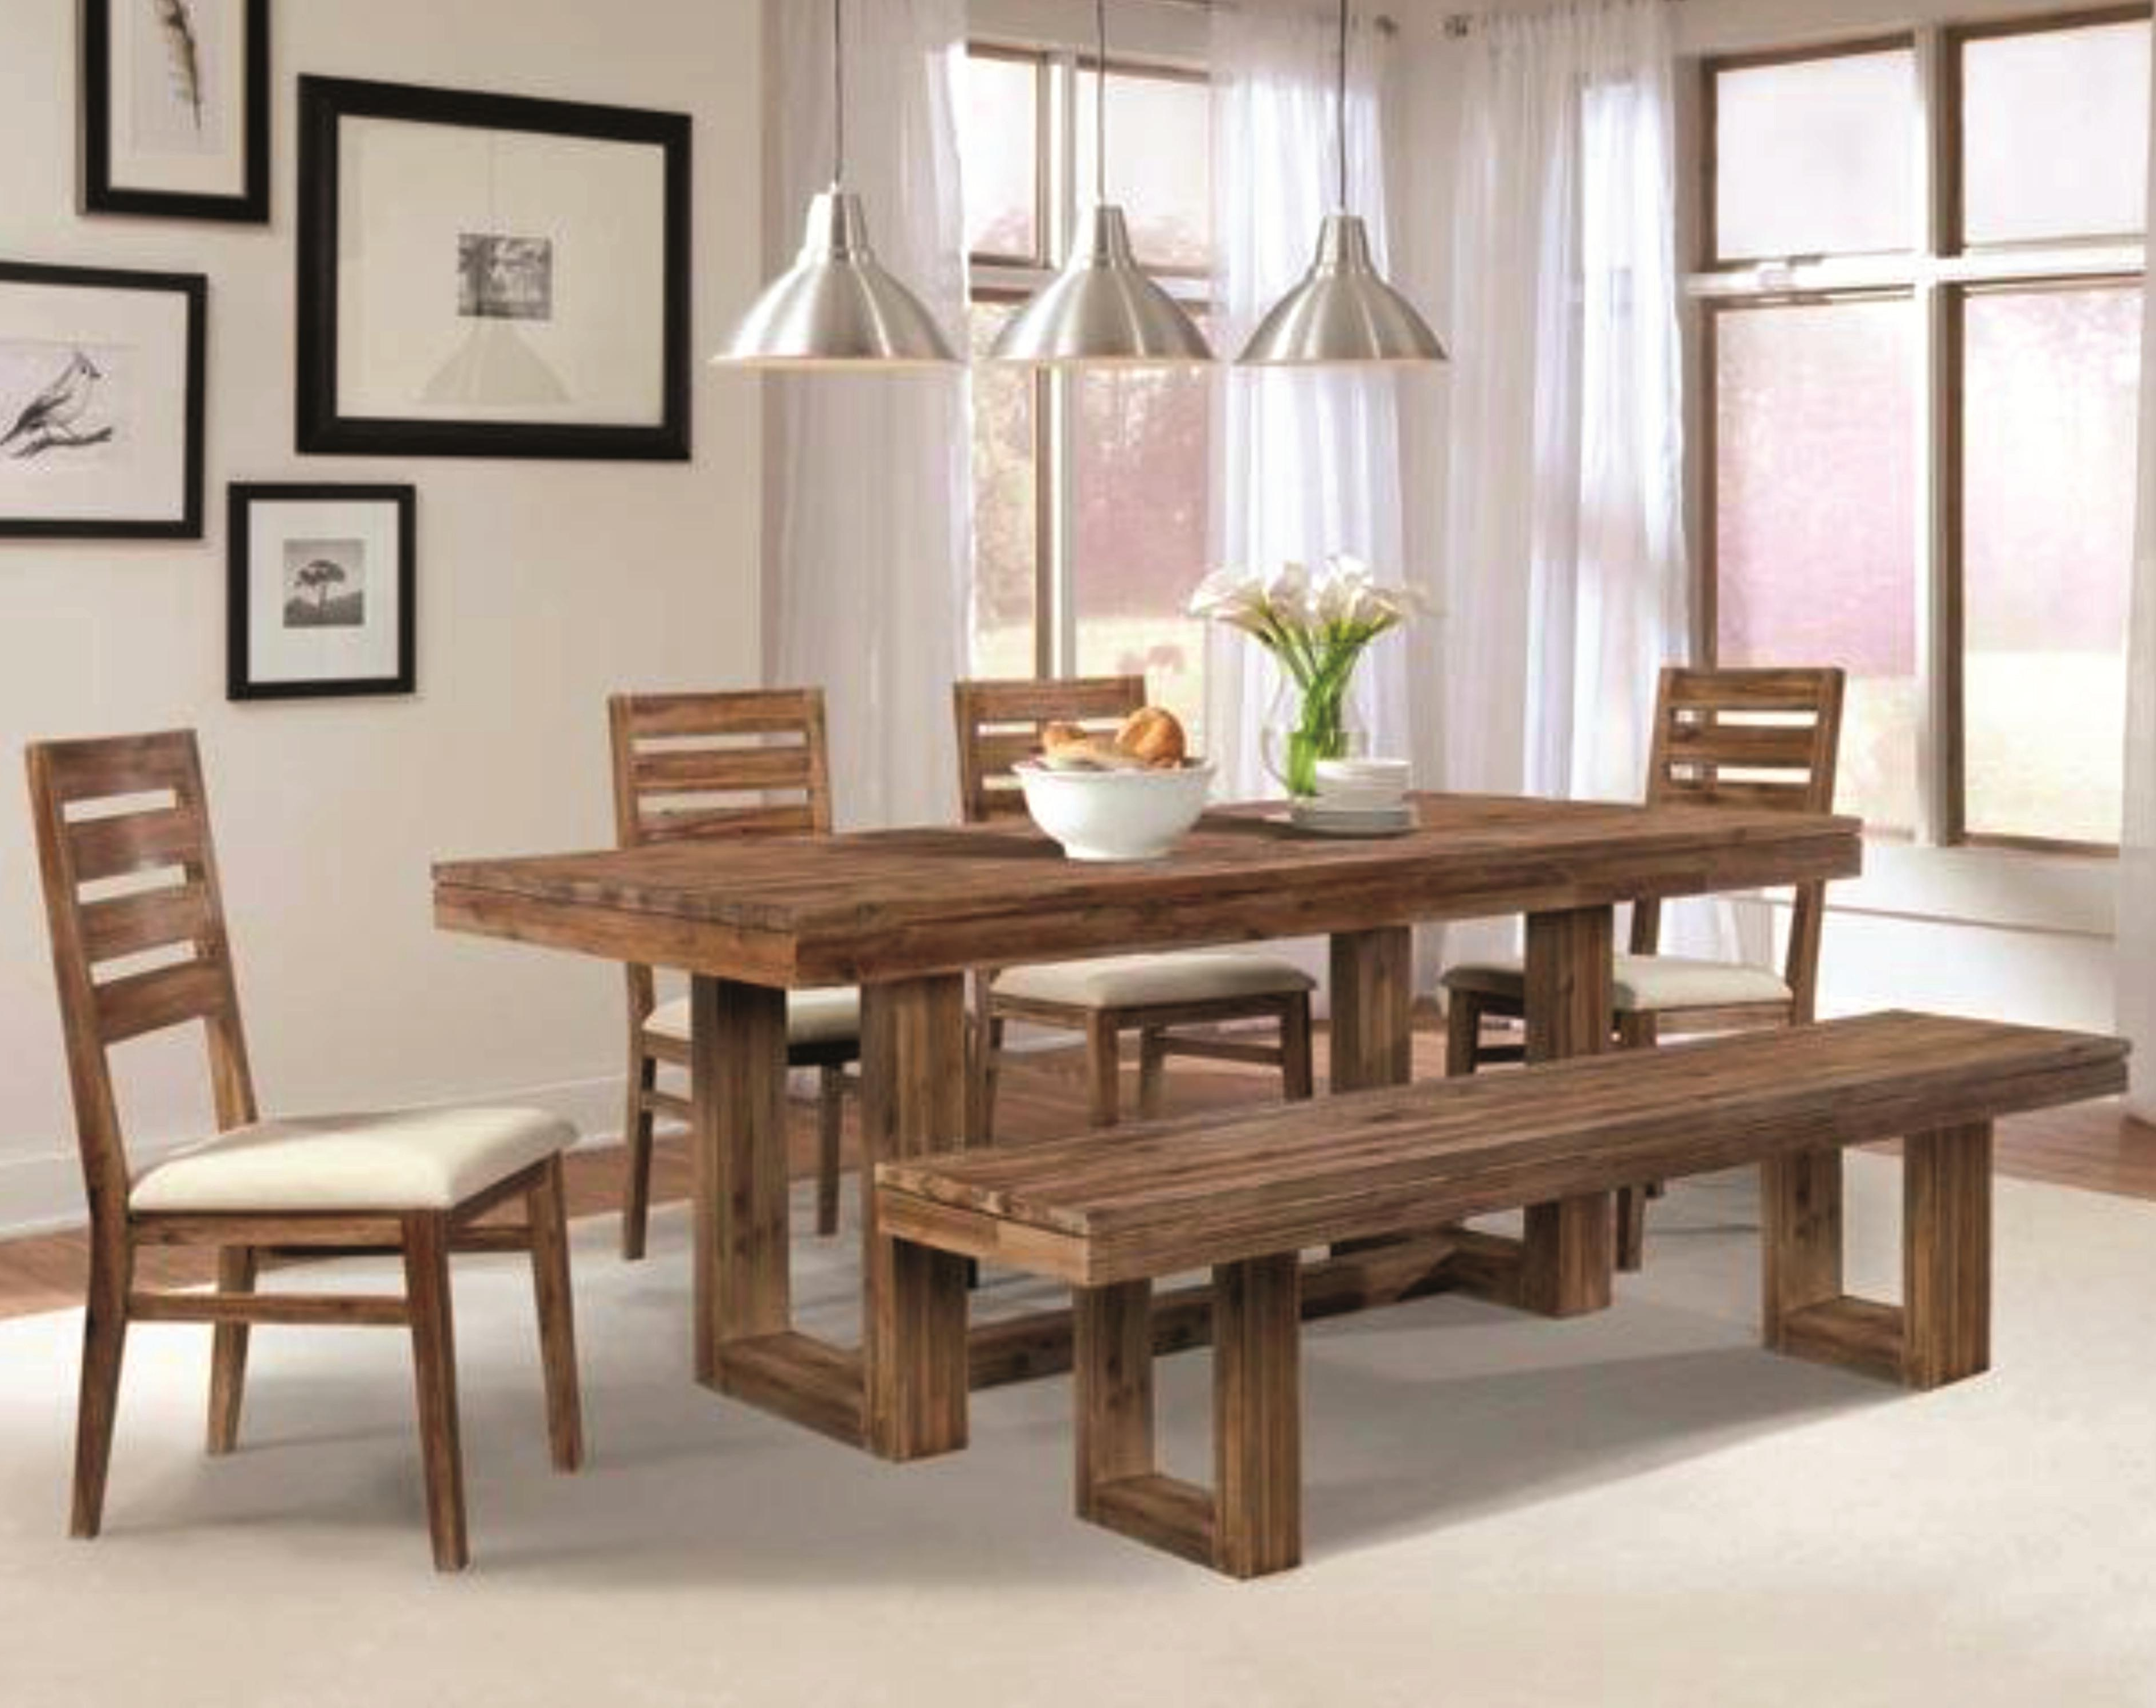 Non Wood Dining Tables Pertaining To Newest Open View Rustic Dining Room Using Wrought Iron Candle Chandelier (View 6 of 25)